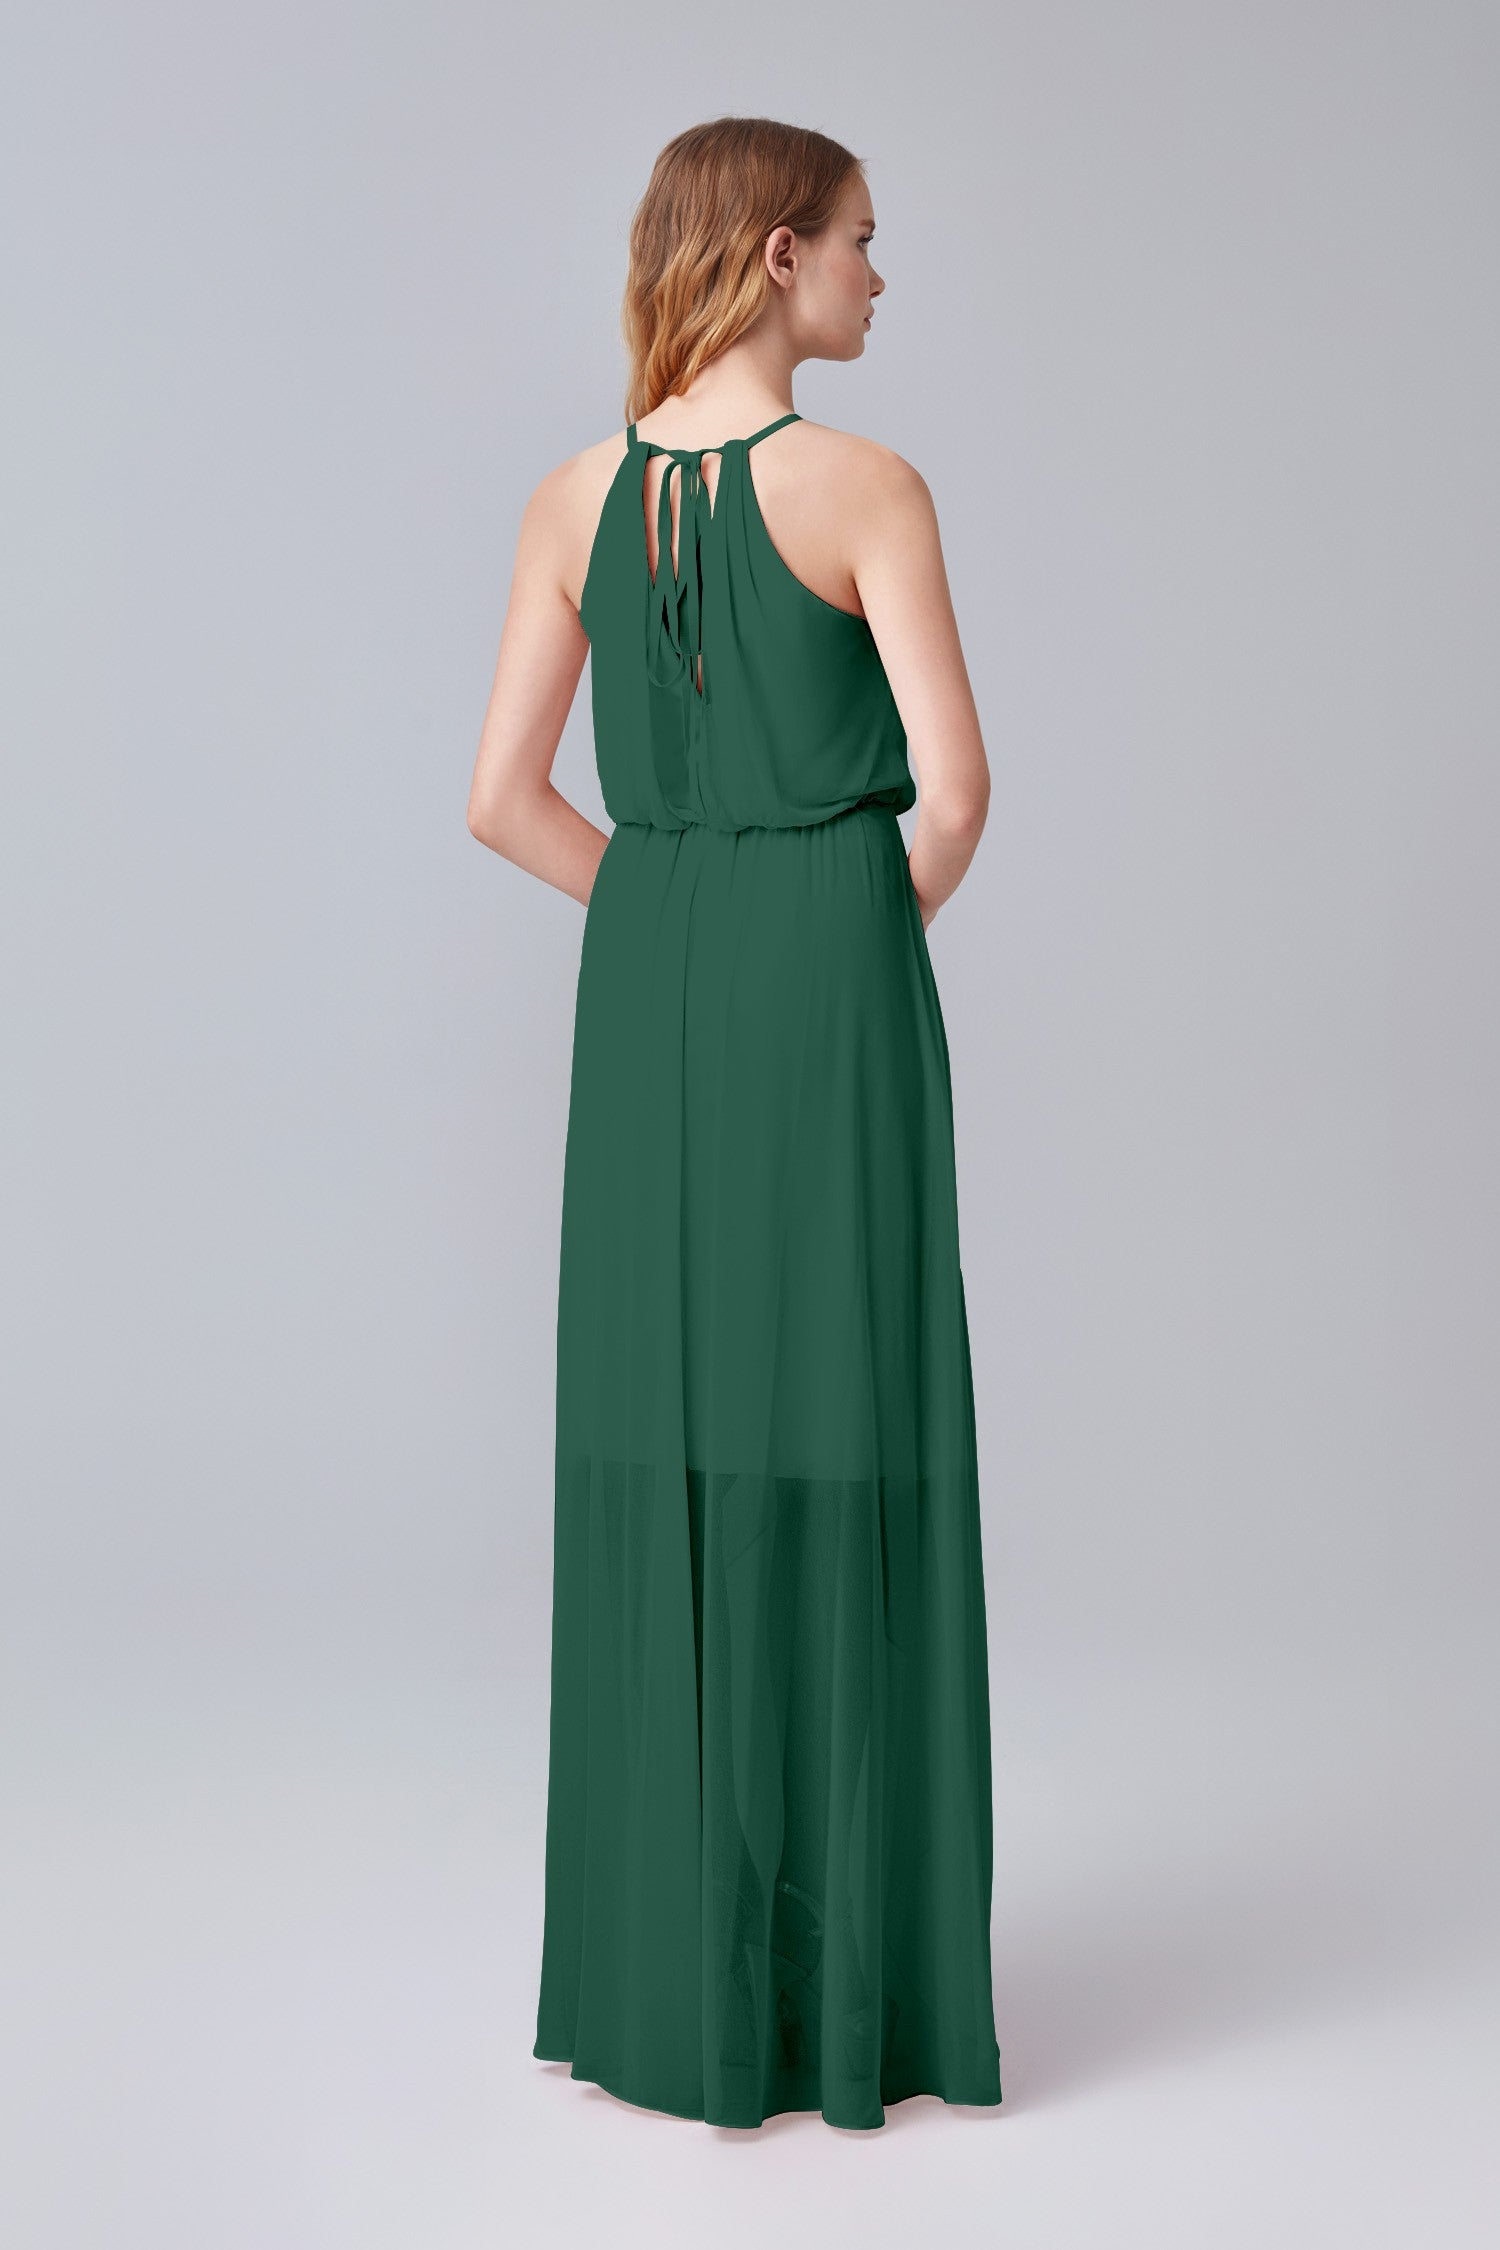 High-Low Chiffon Halter Bridesmaid Dress-F19740